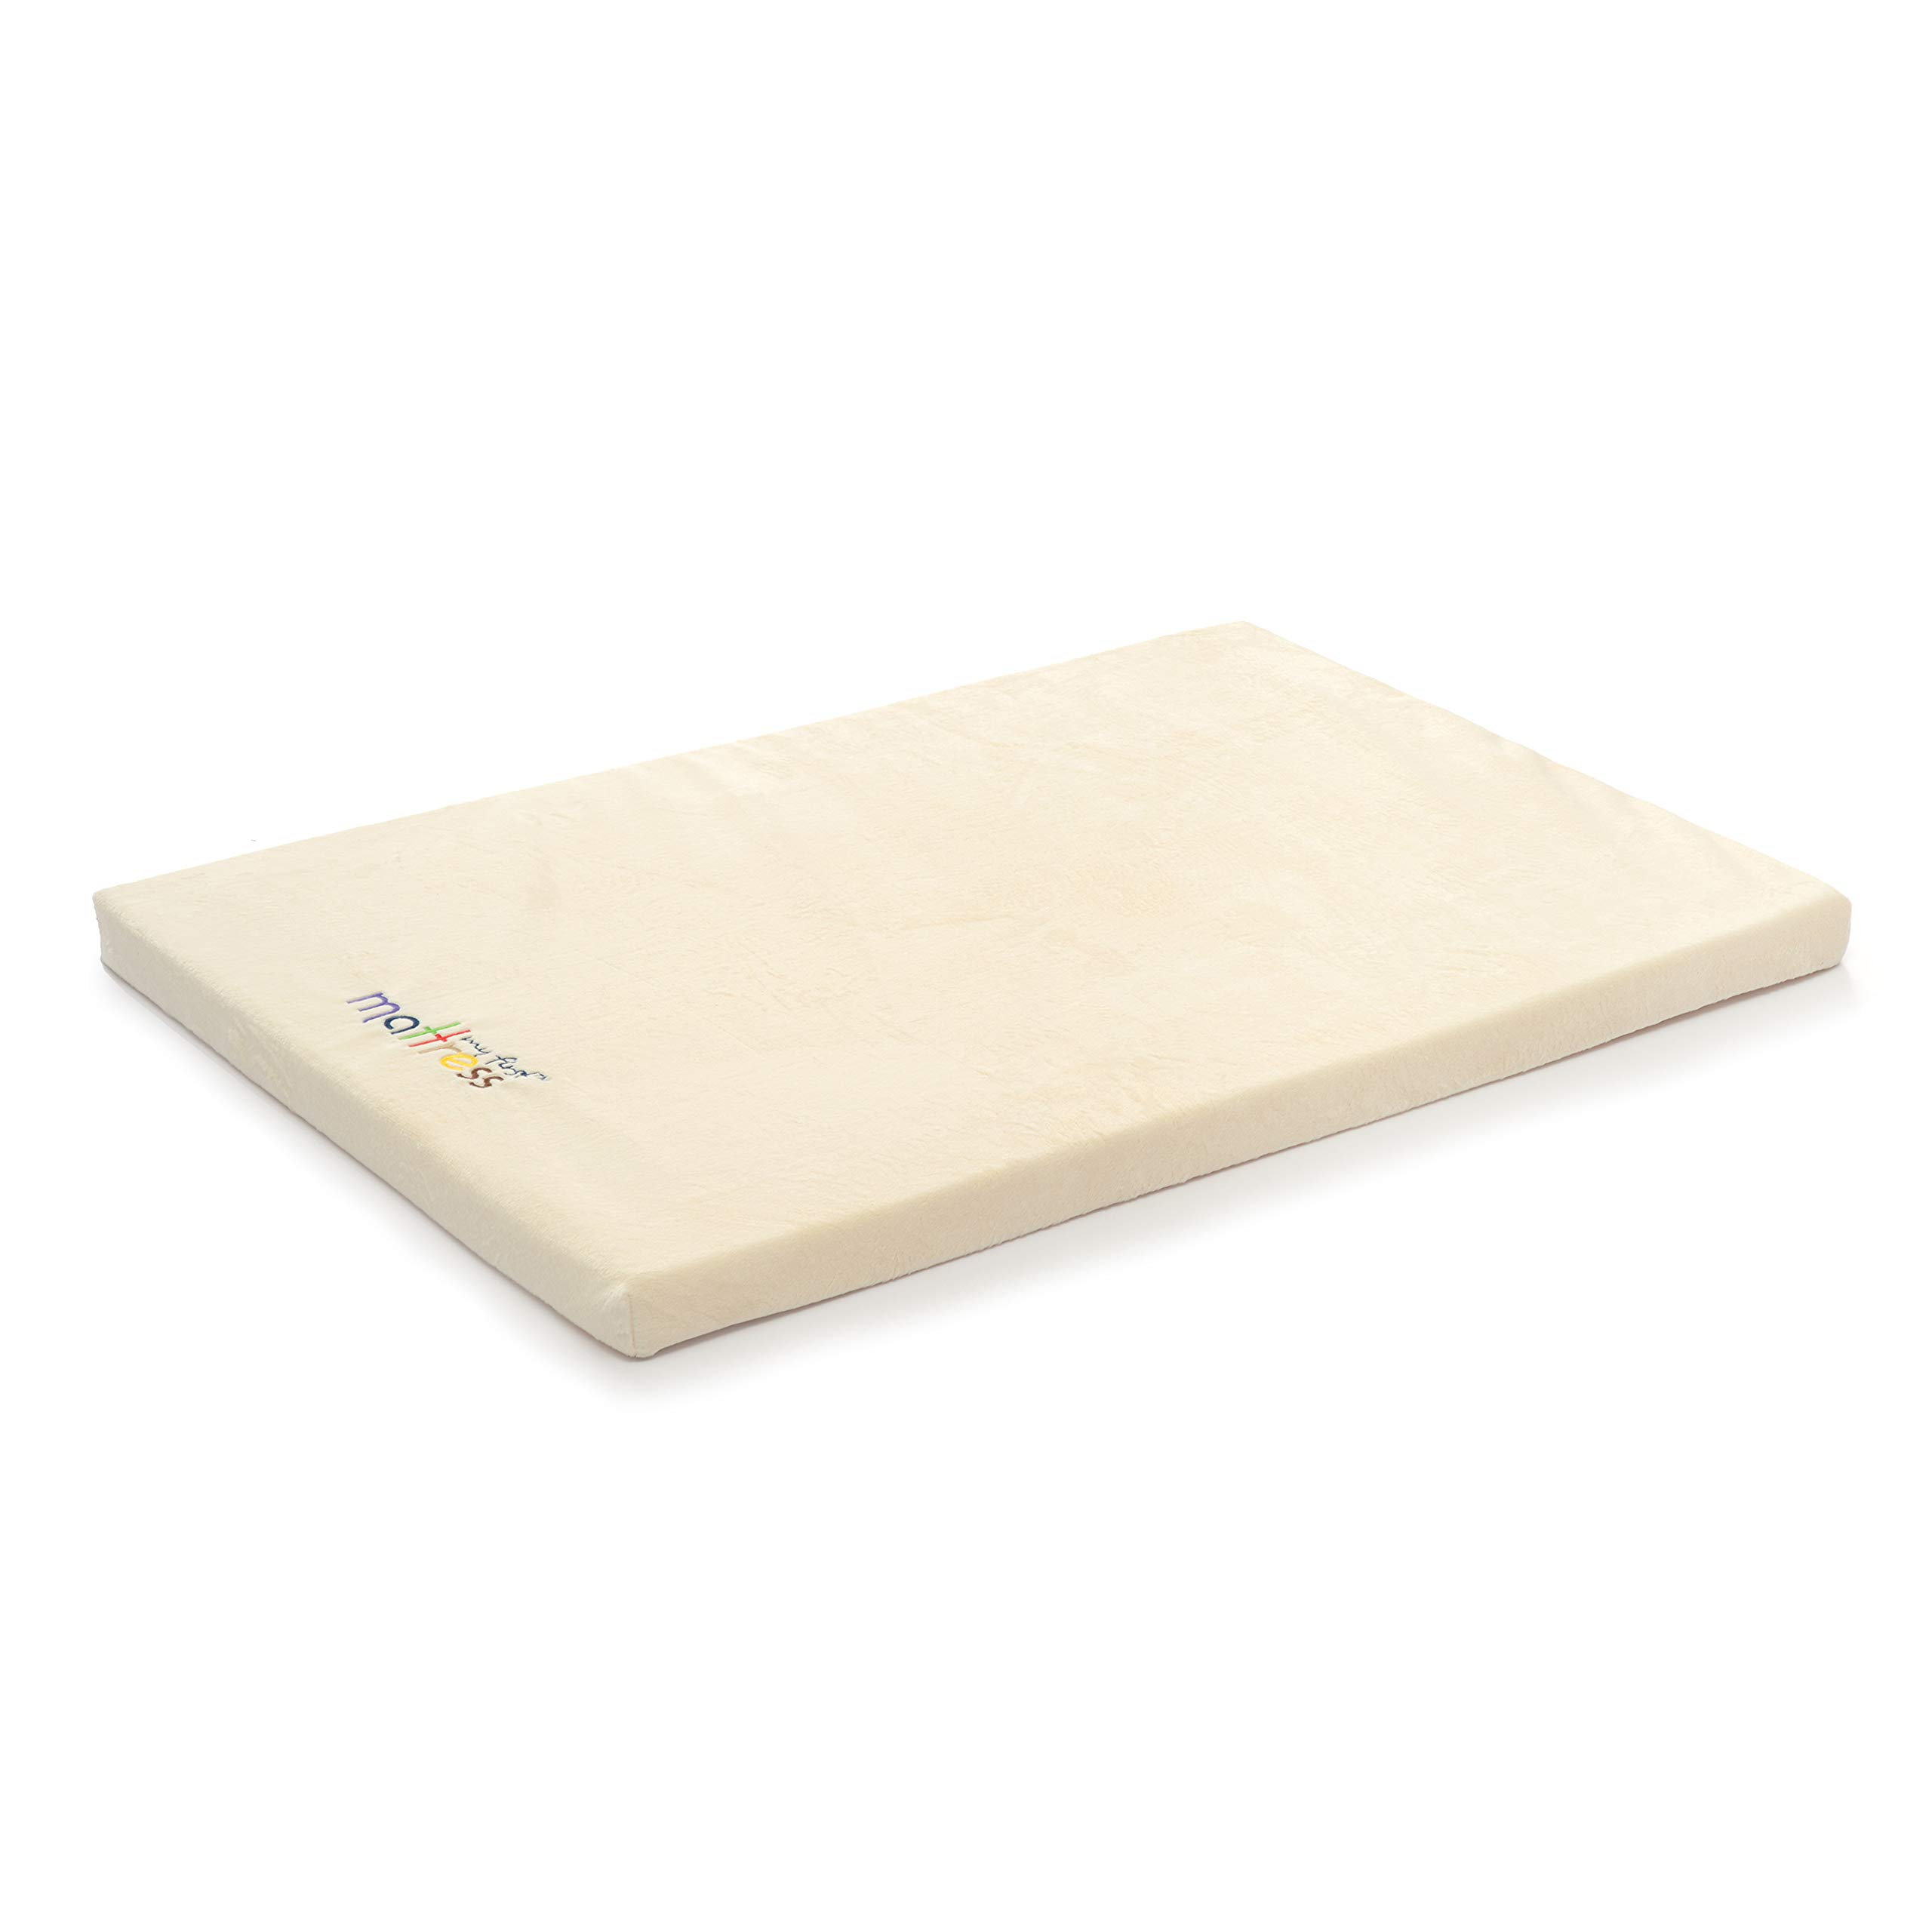 My First Pack N Play Mattress Pad or Mini Crib Pad, 37'' x 26'' x 1-1/2'' by My First Mattress